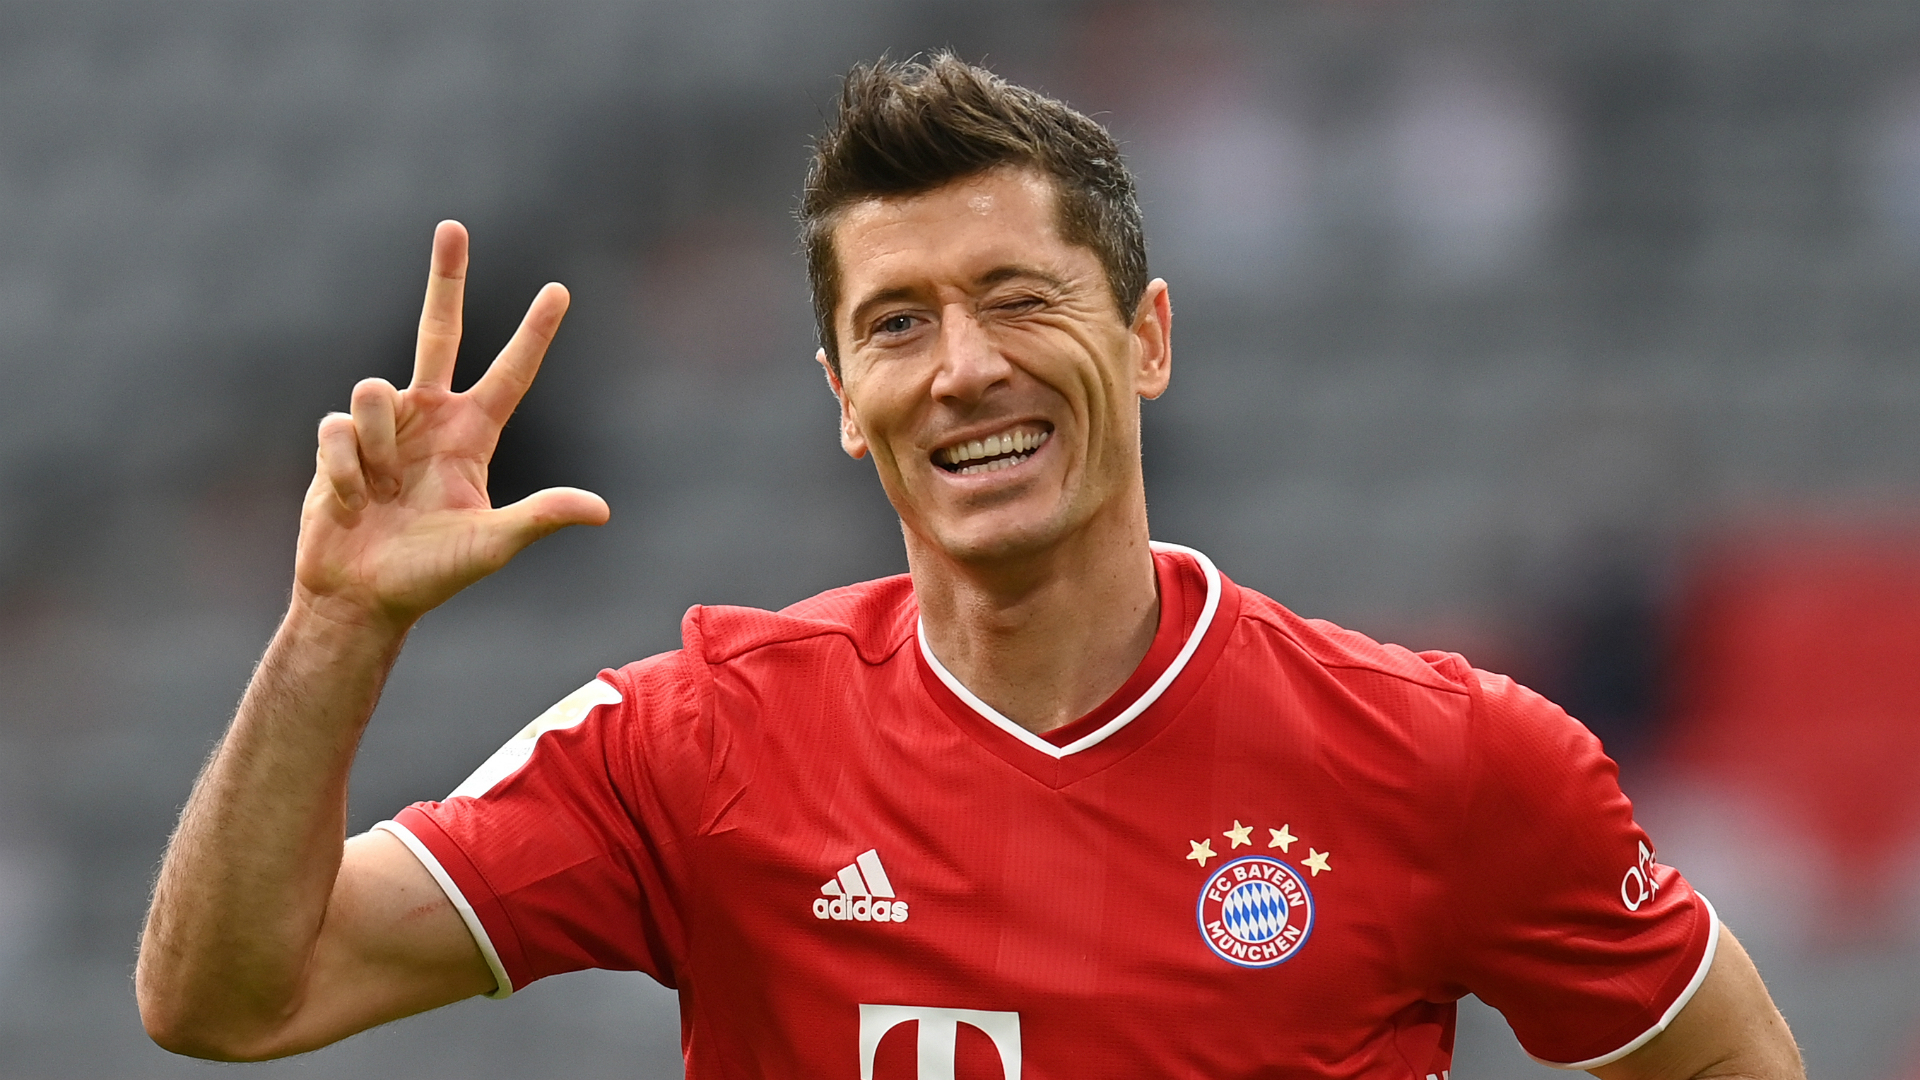 Flick expects Lewandowski to be fit for Union Berlin clash